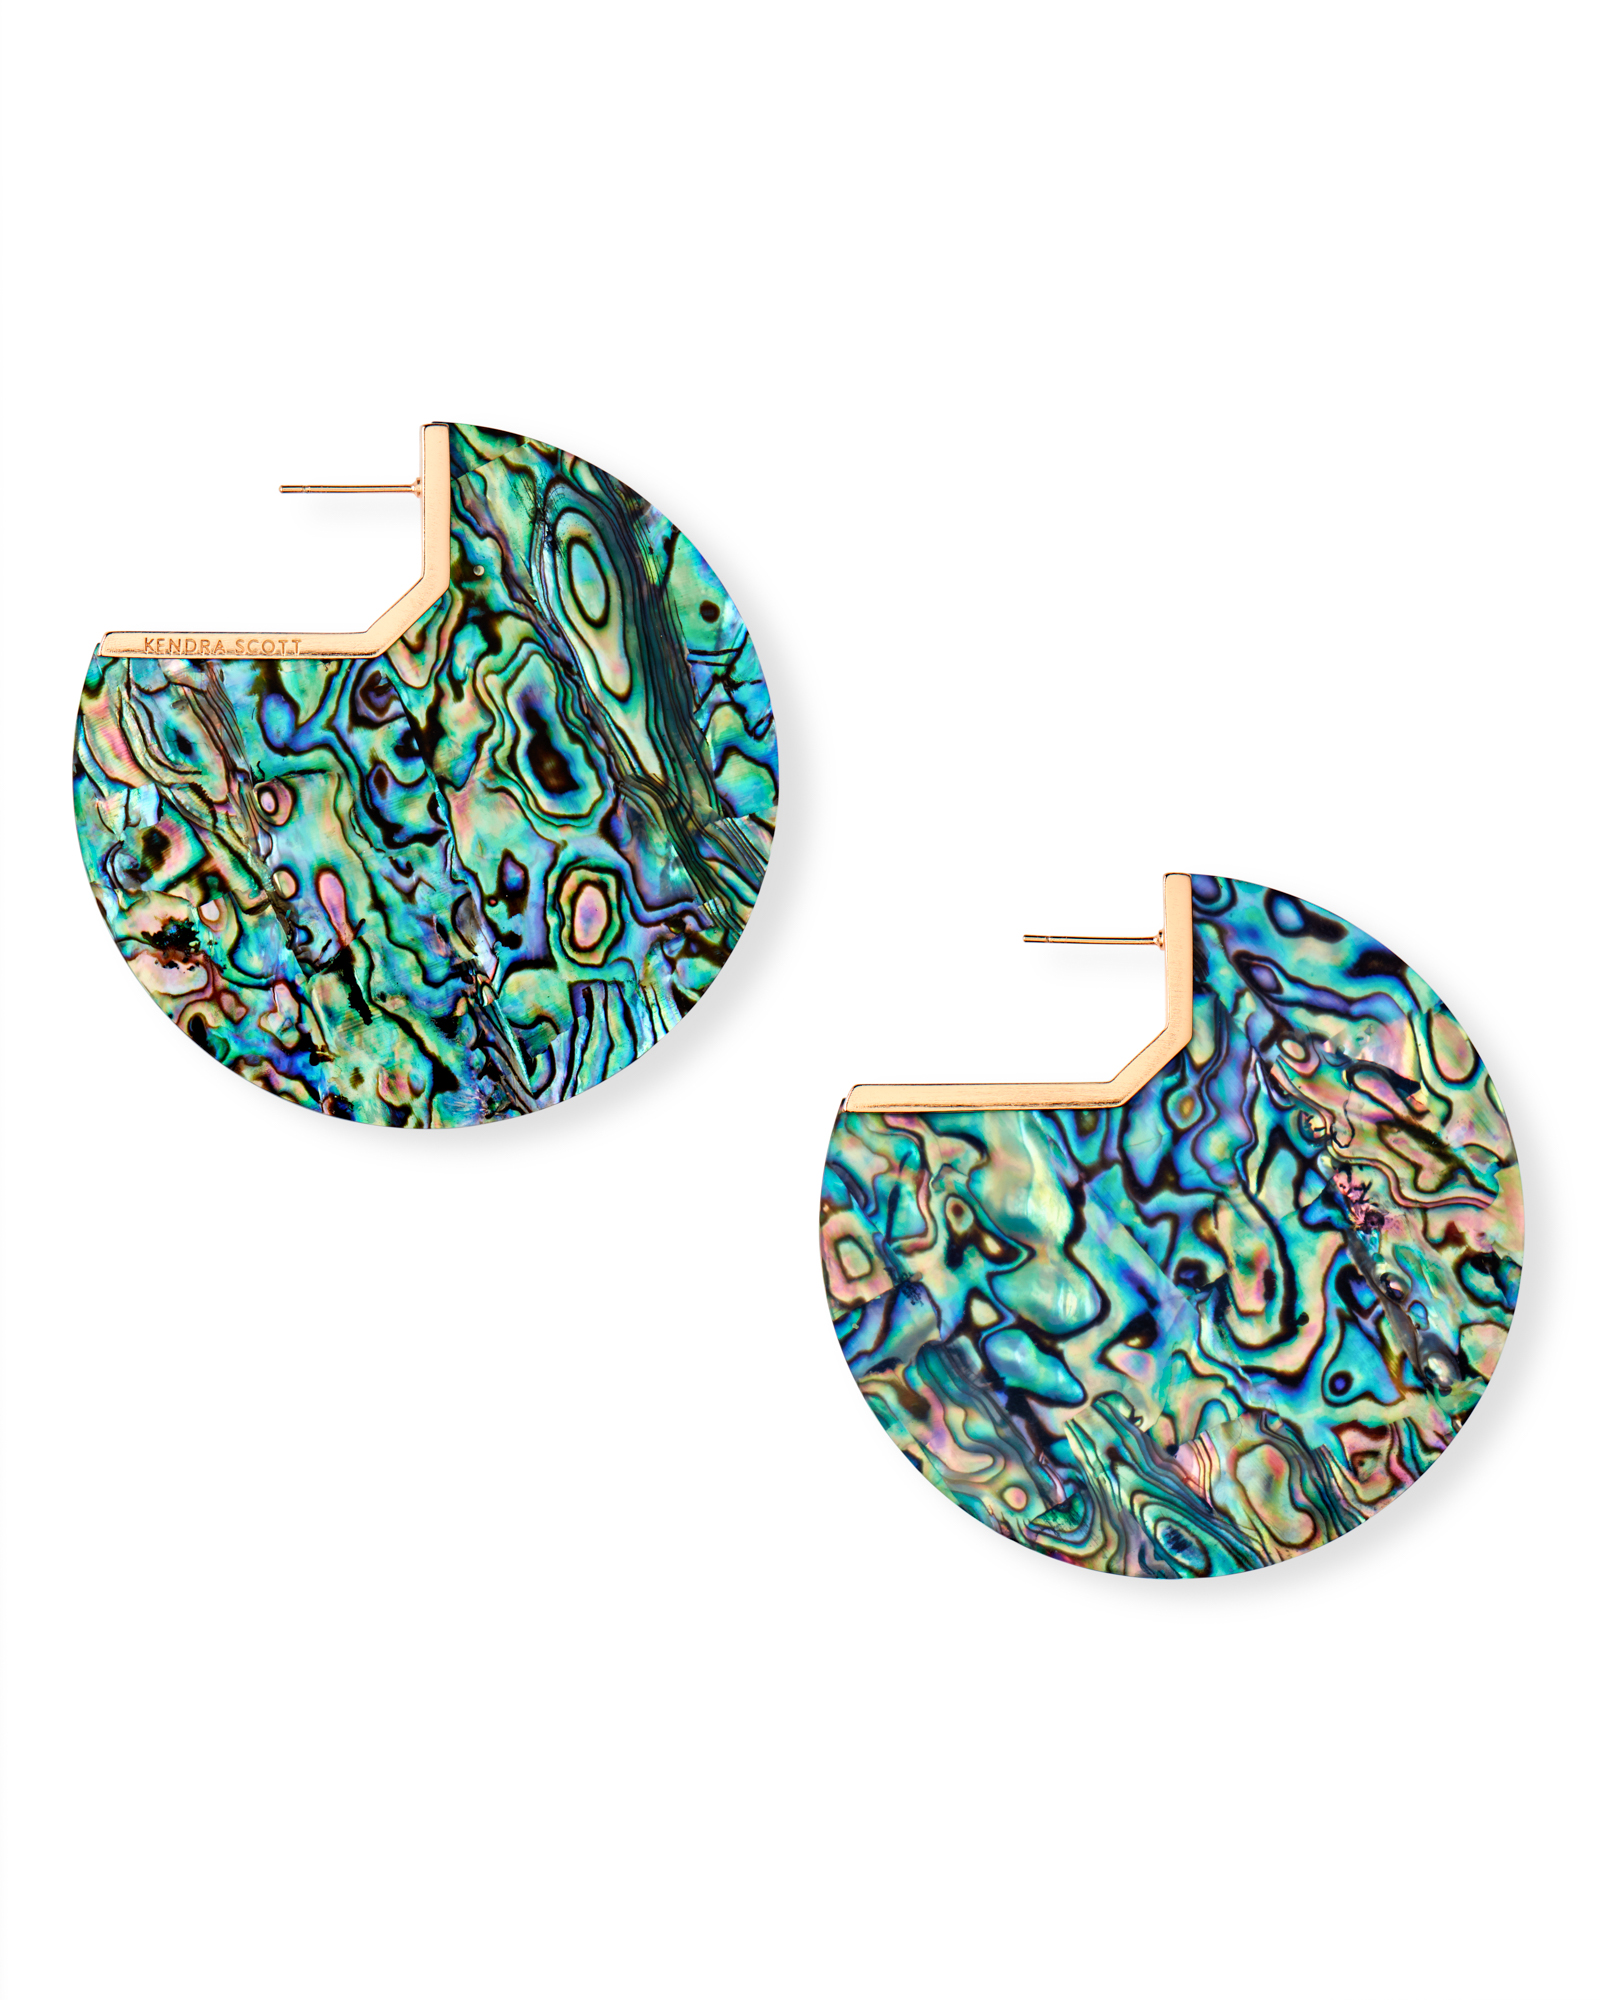 Kai Rose Gold Hoop Earrings in Abalone Shell